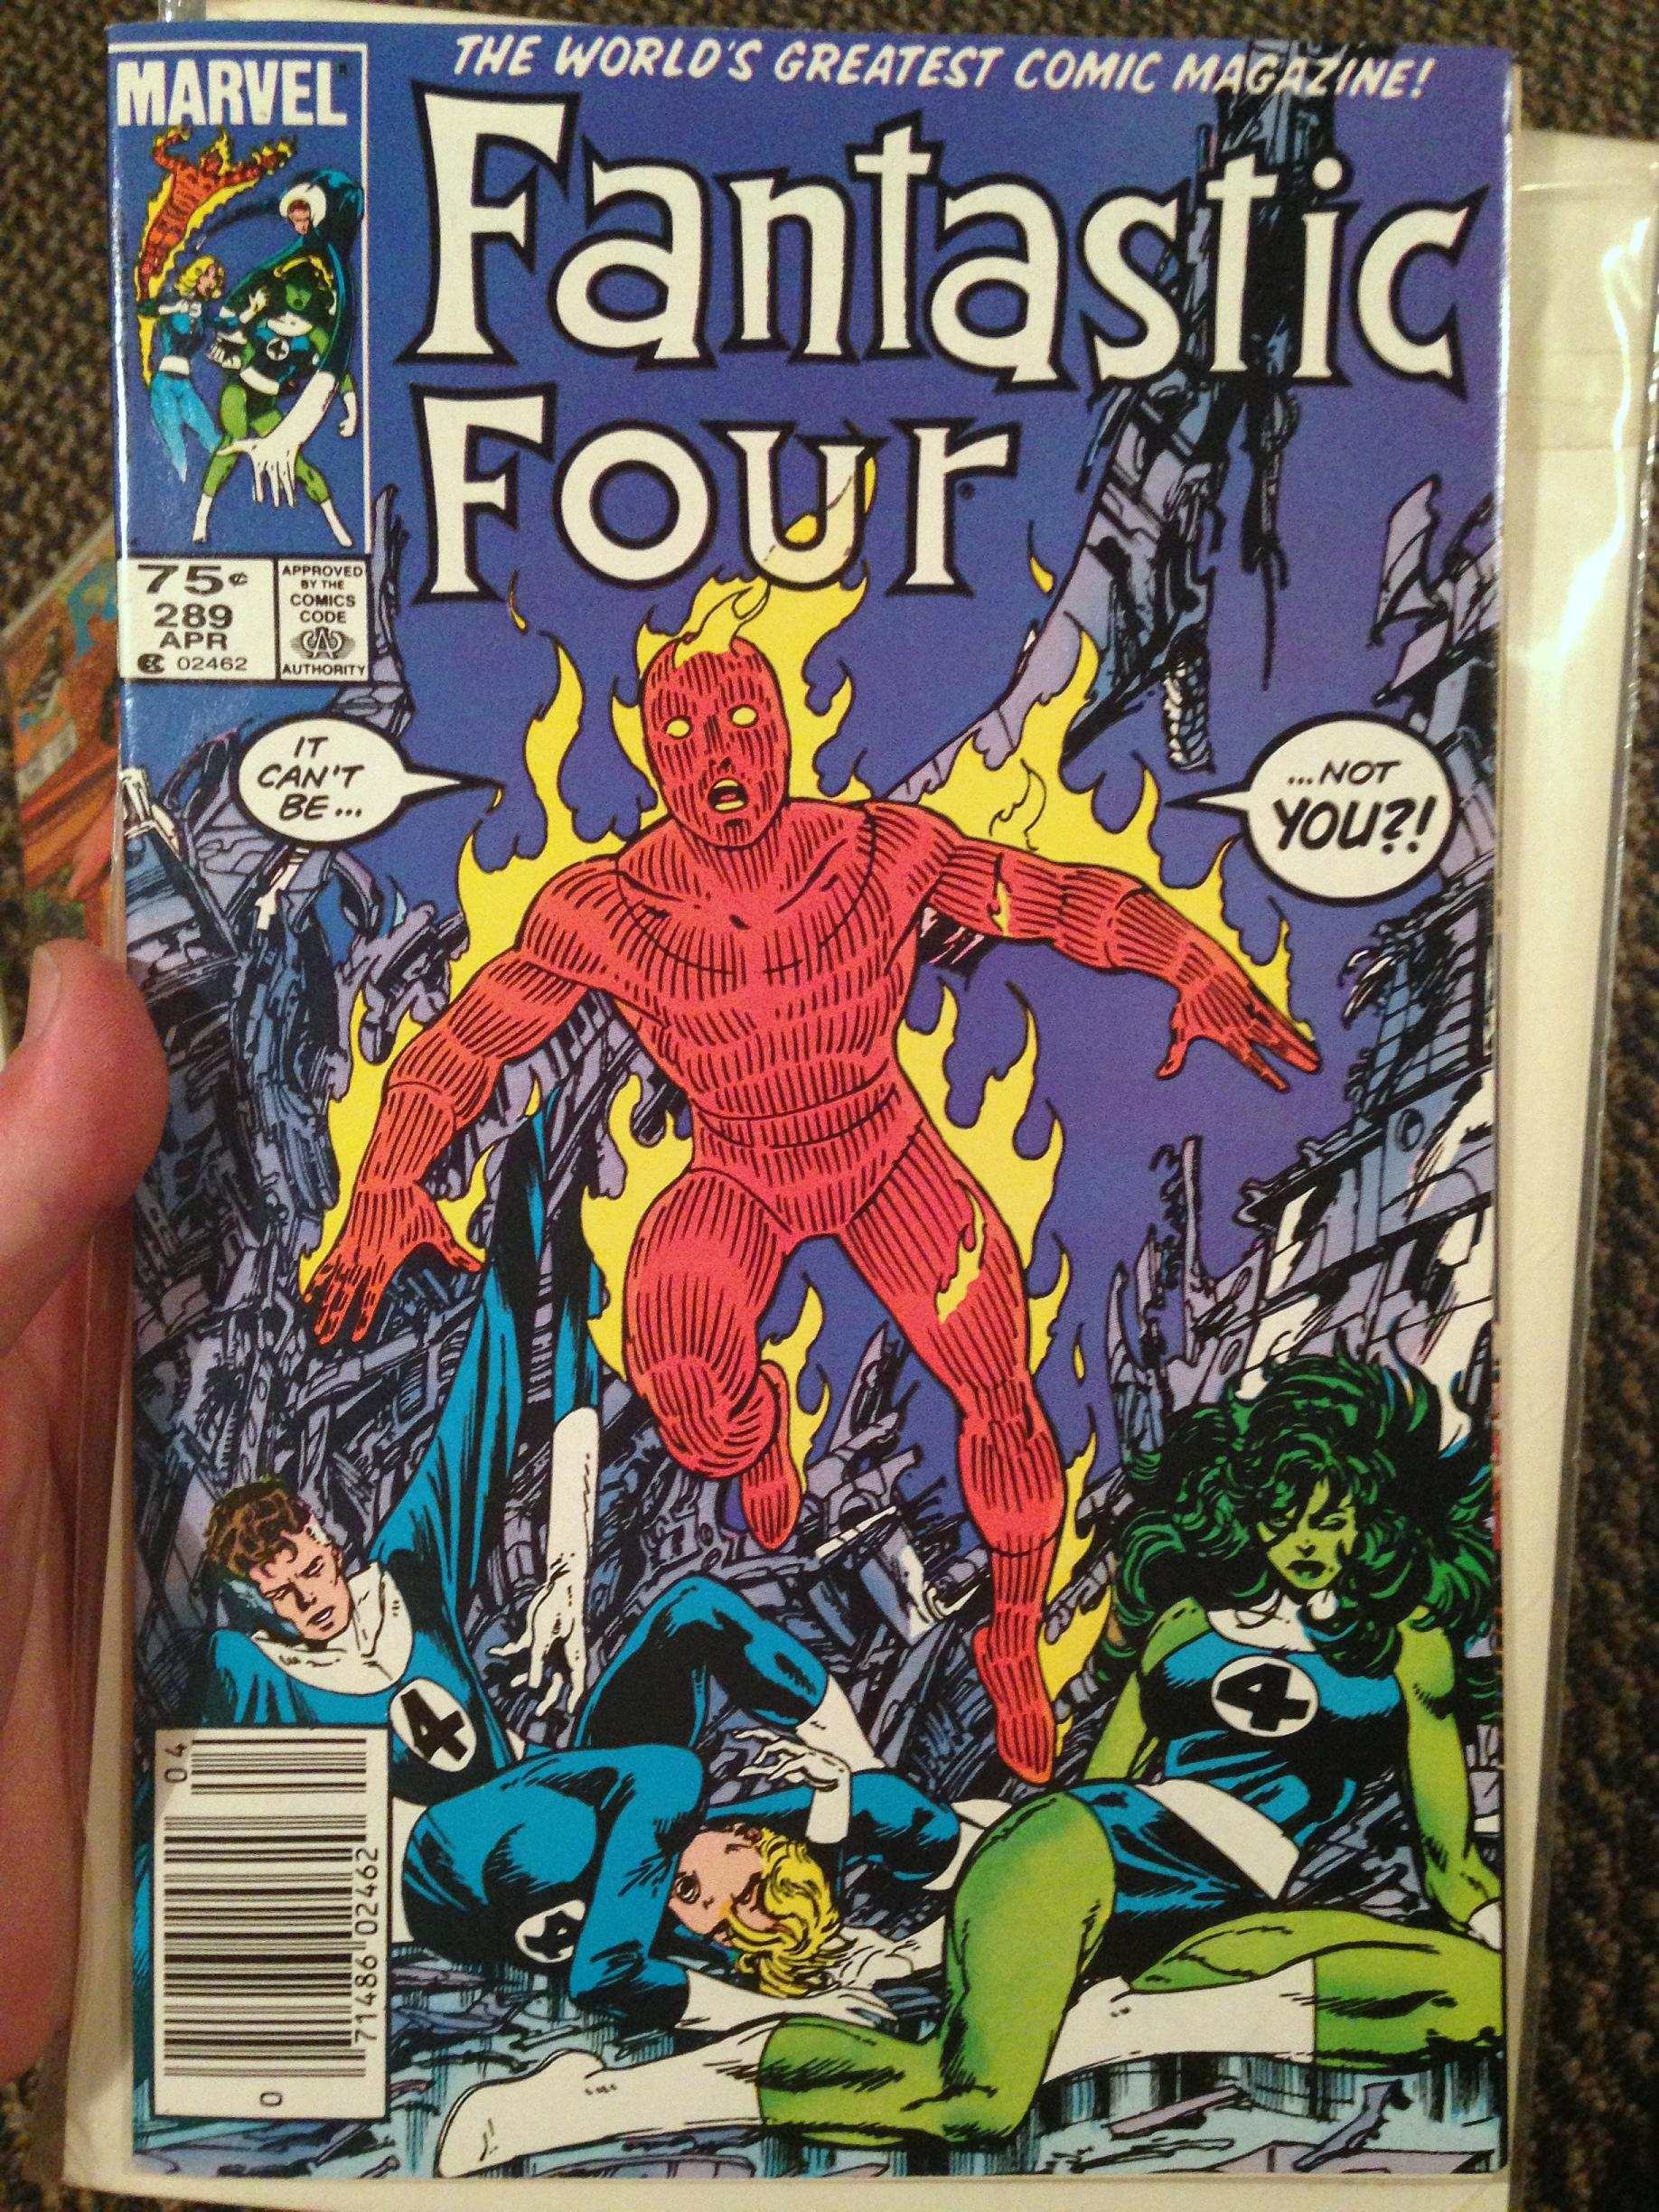 Fantastic Four John Byrne Collection (7)